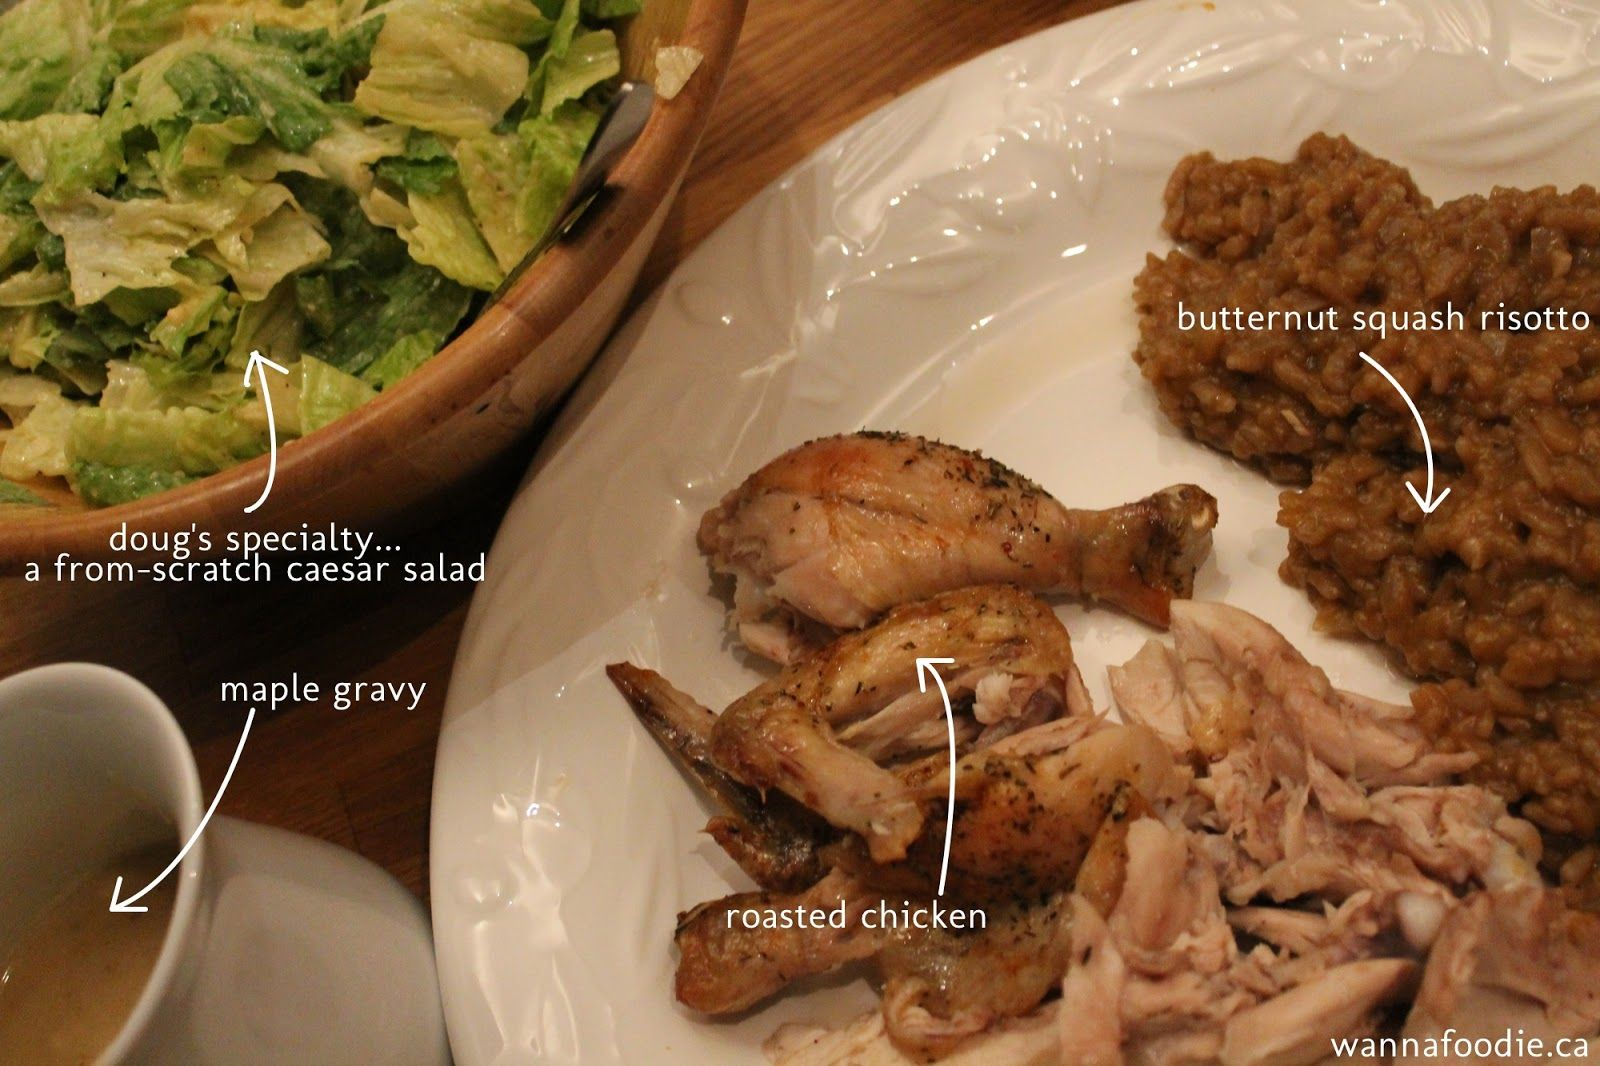 wannafoodie.ca: Roasted Chicken with Maple Butternut Squash Risotto